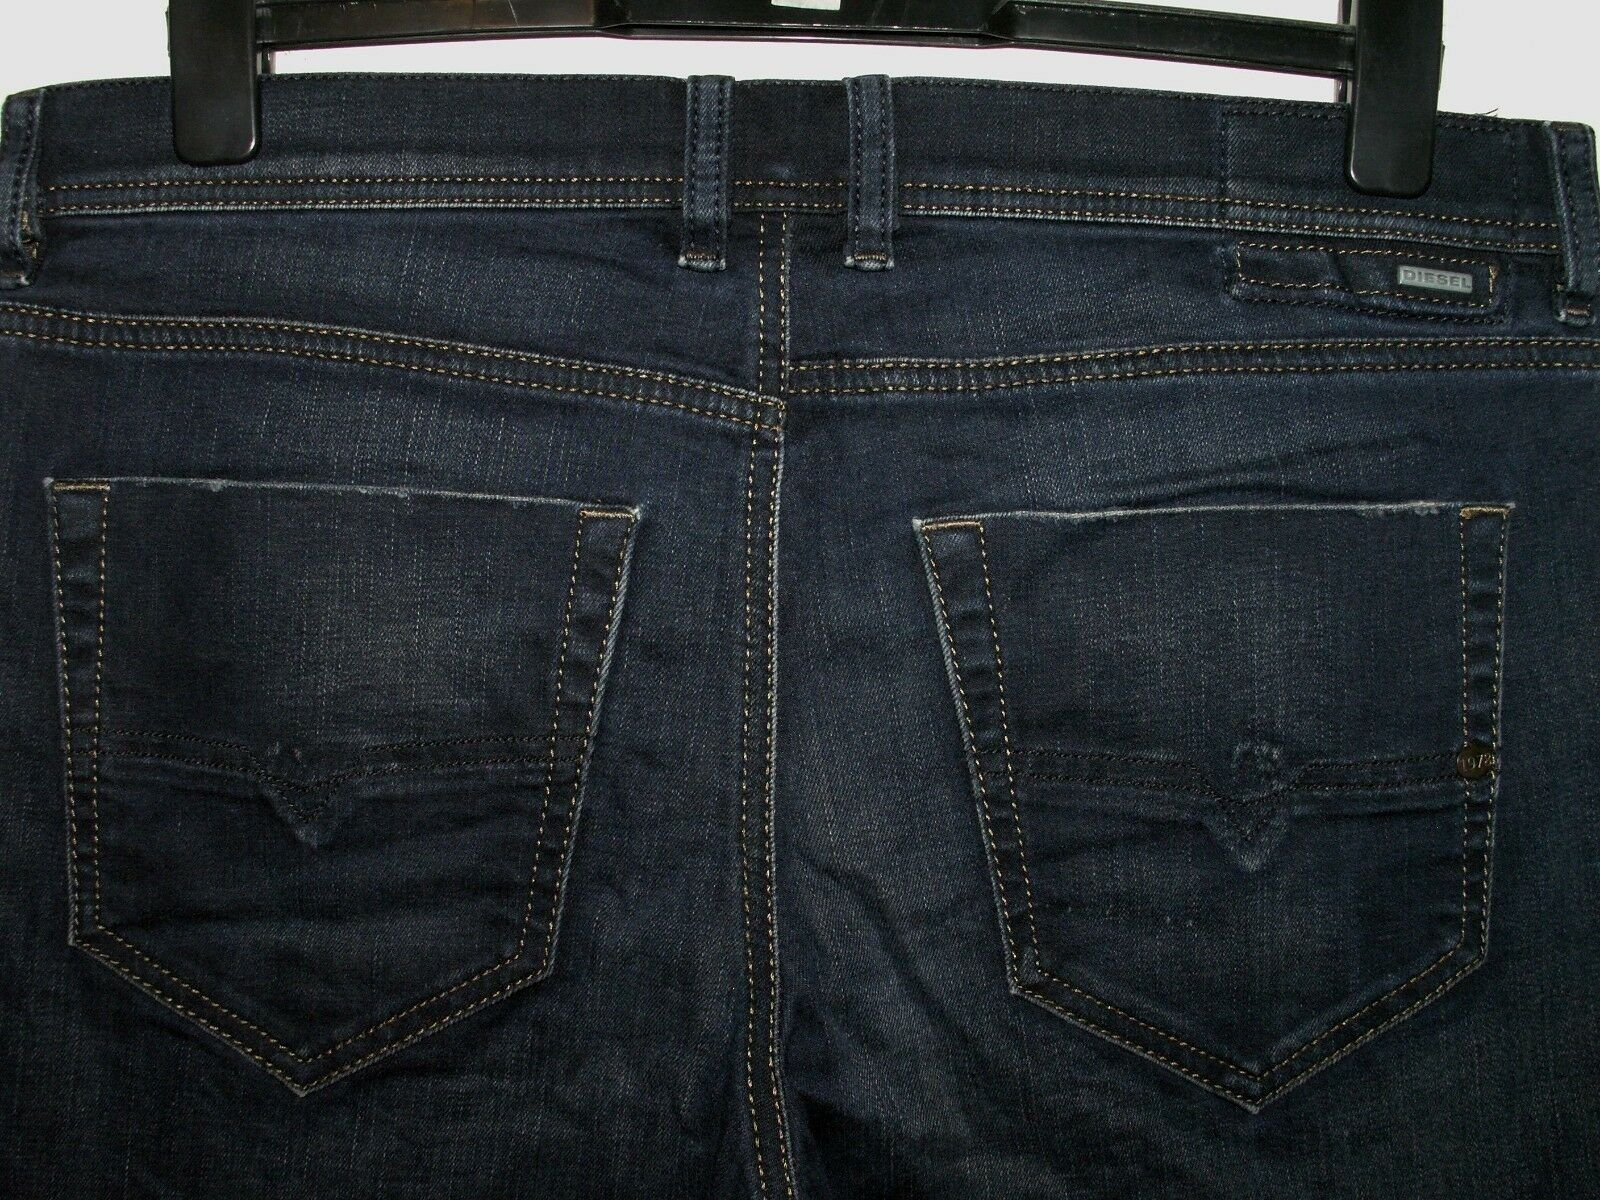 DIESEL TEPPHAR SLIM-CARred FIT JEANS 0857Z W34 L32 (5885)